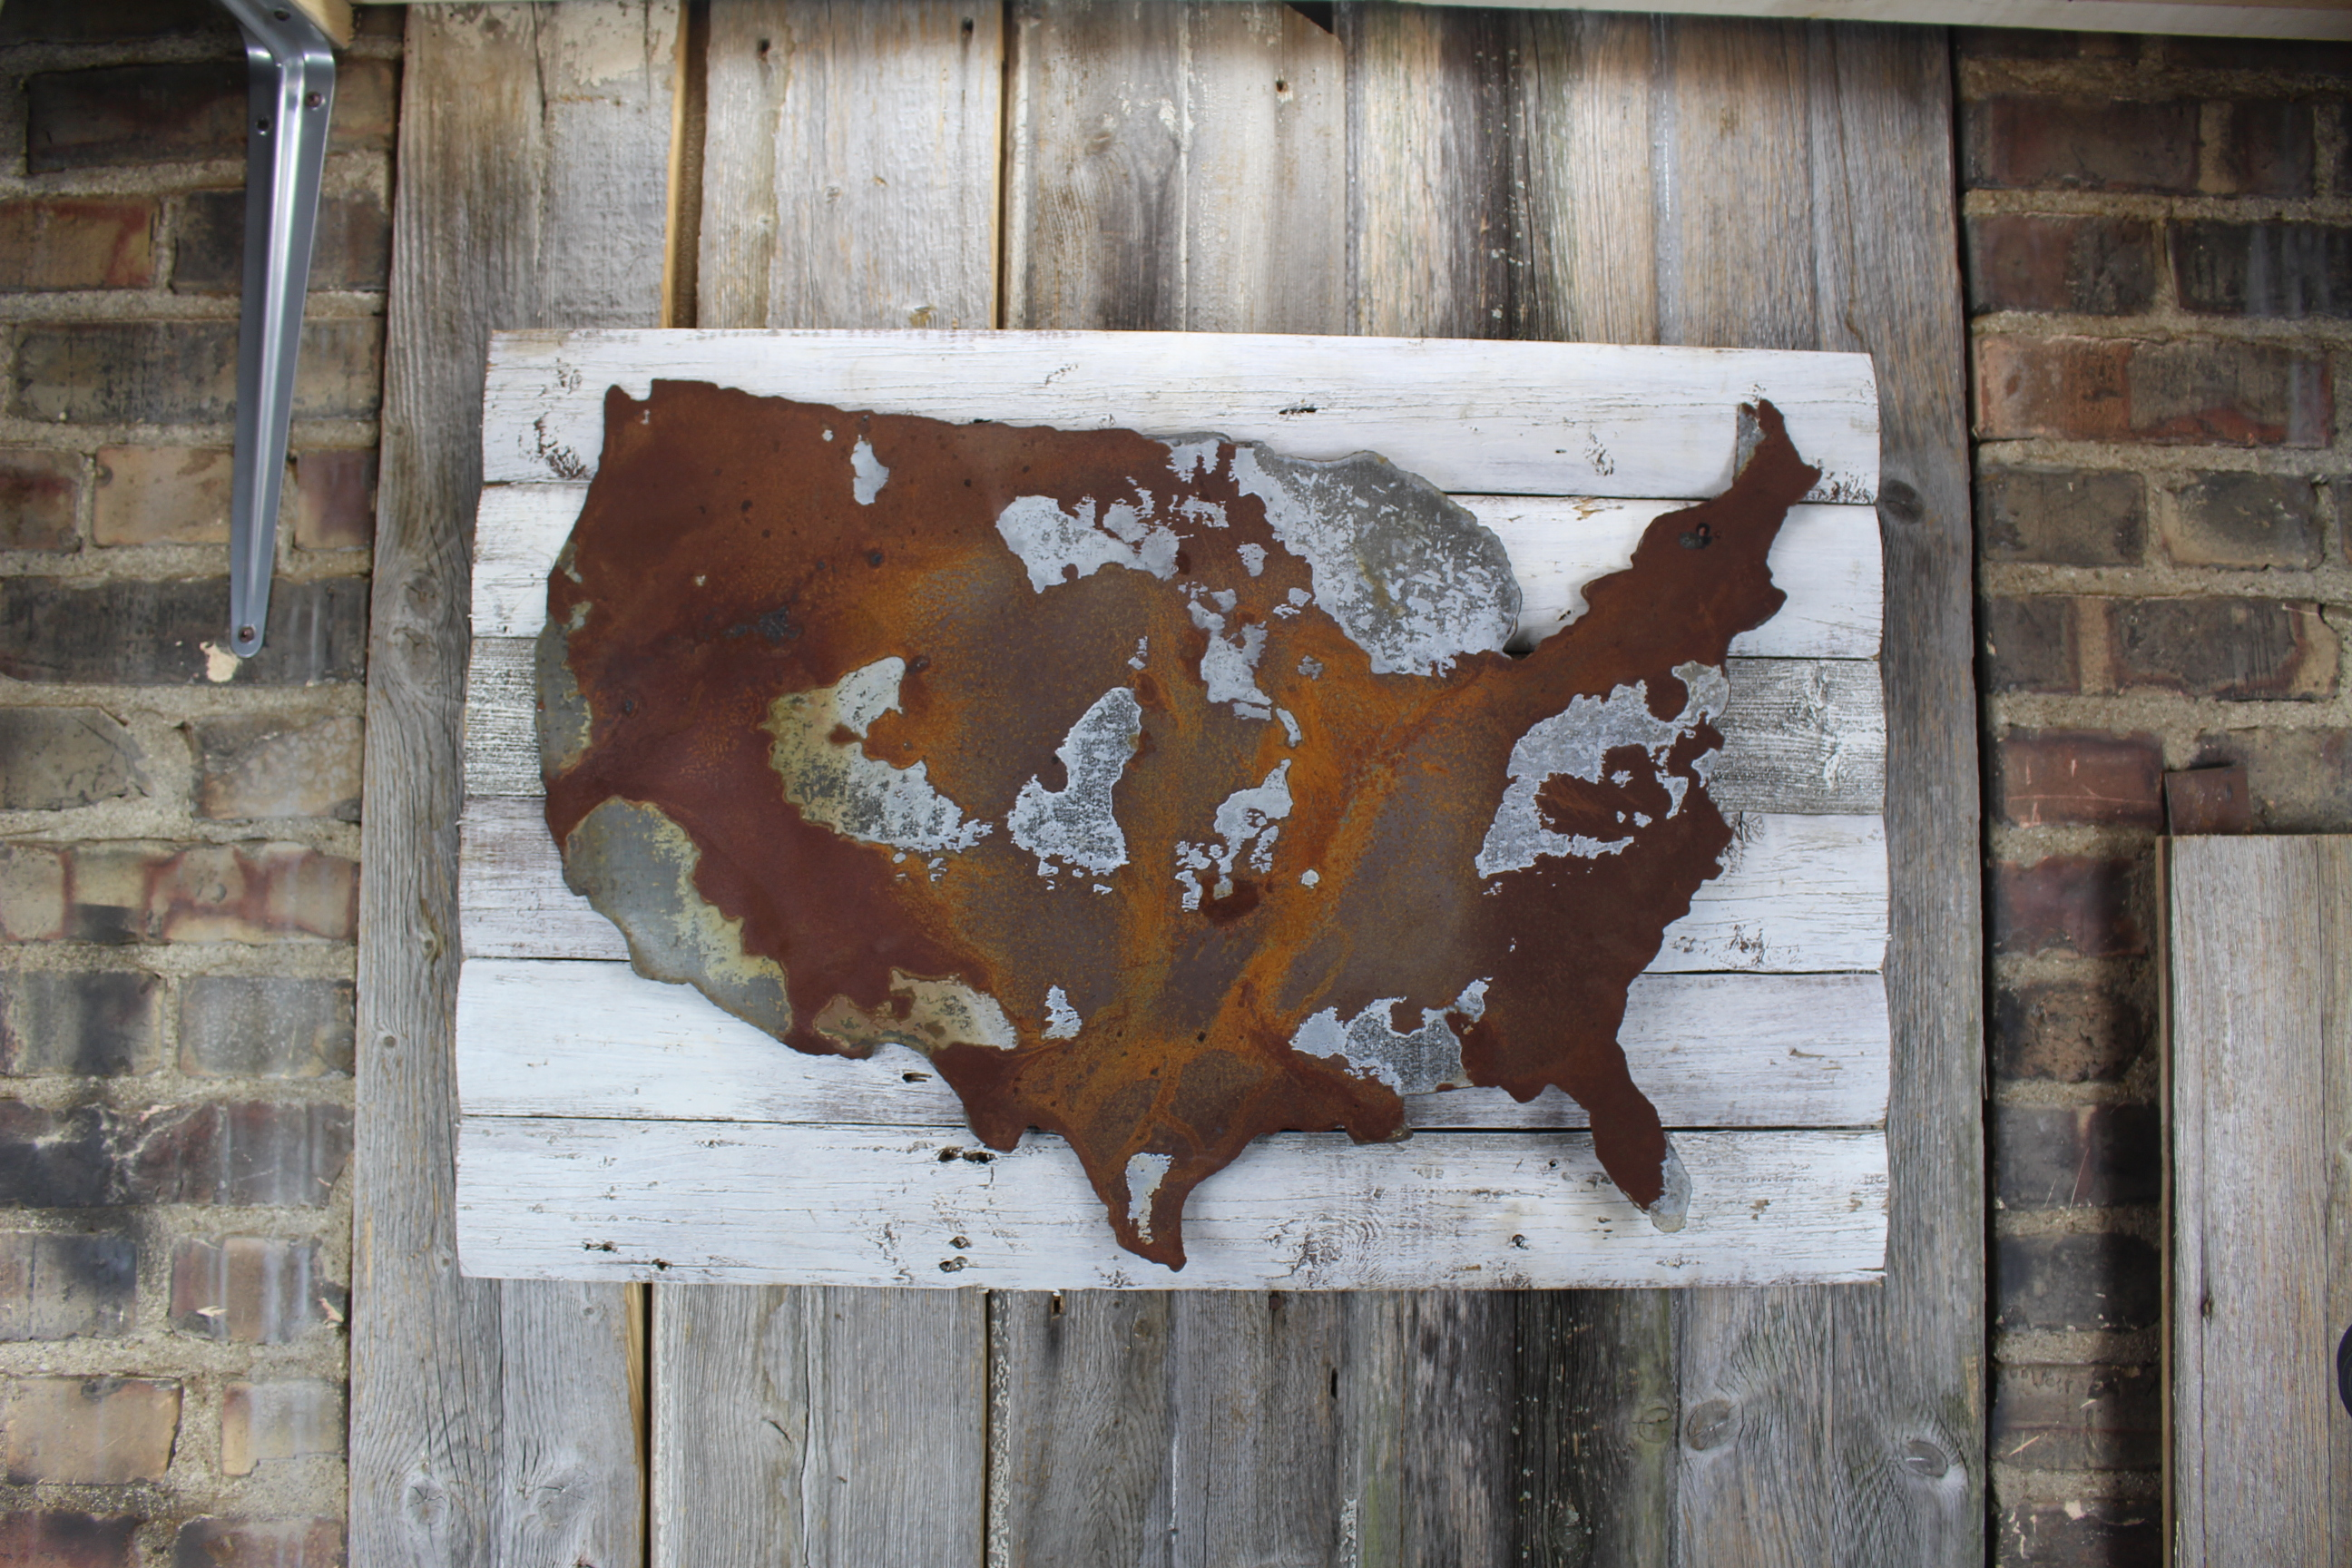 USA on woodback